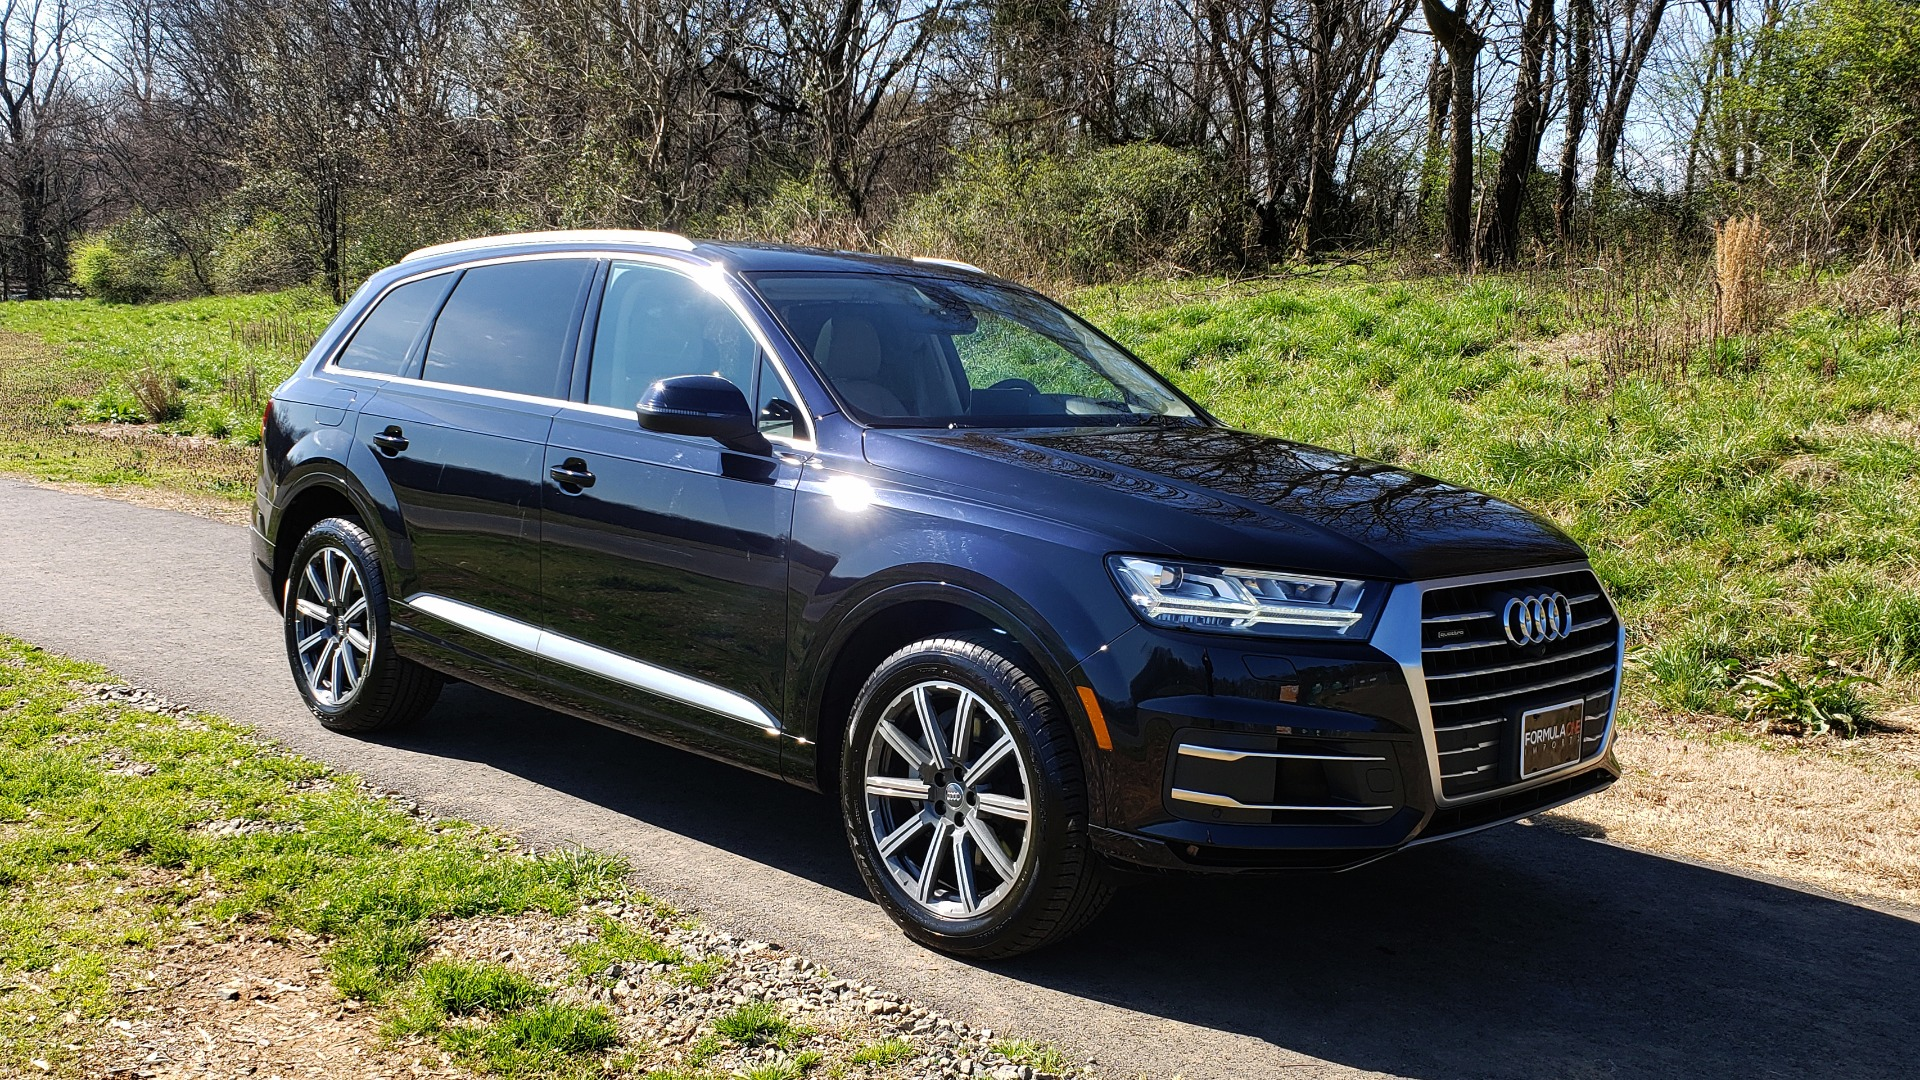 Used 2018 Audi Q7 PRESTIGE 3.0T CLD WTHR / NAV / BOSE / HEADS-UP / REARVIEW for sale Sold at Formula Imports in Charlotte NC 28227 4